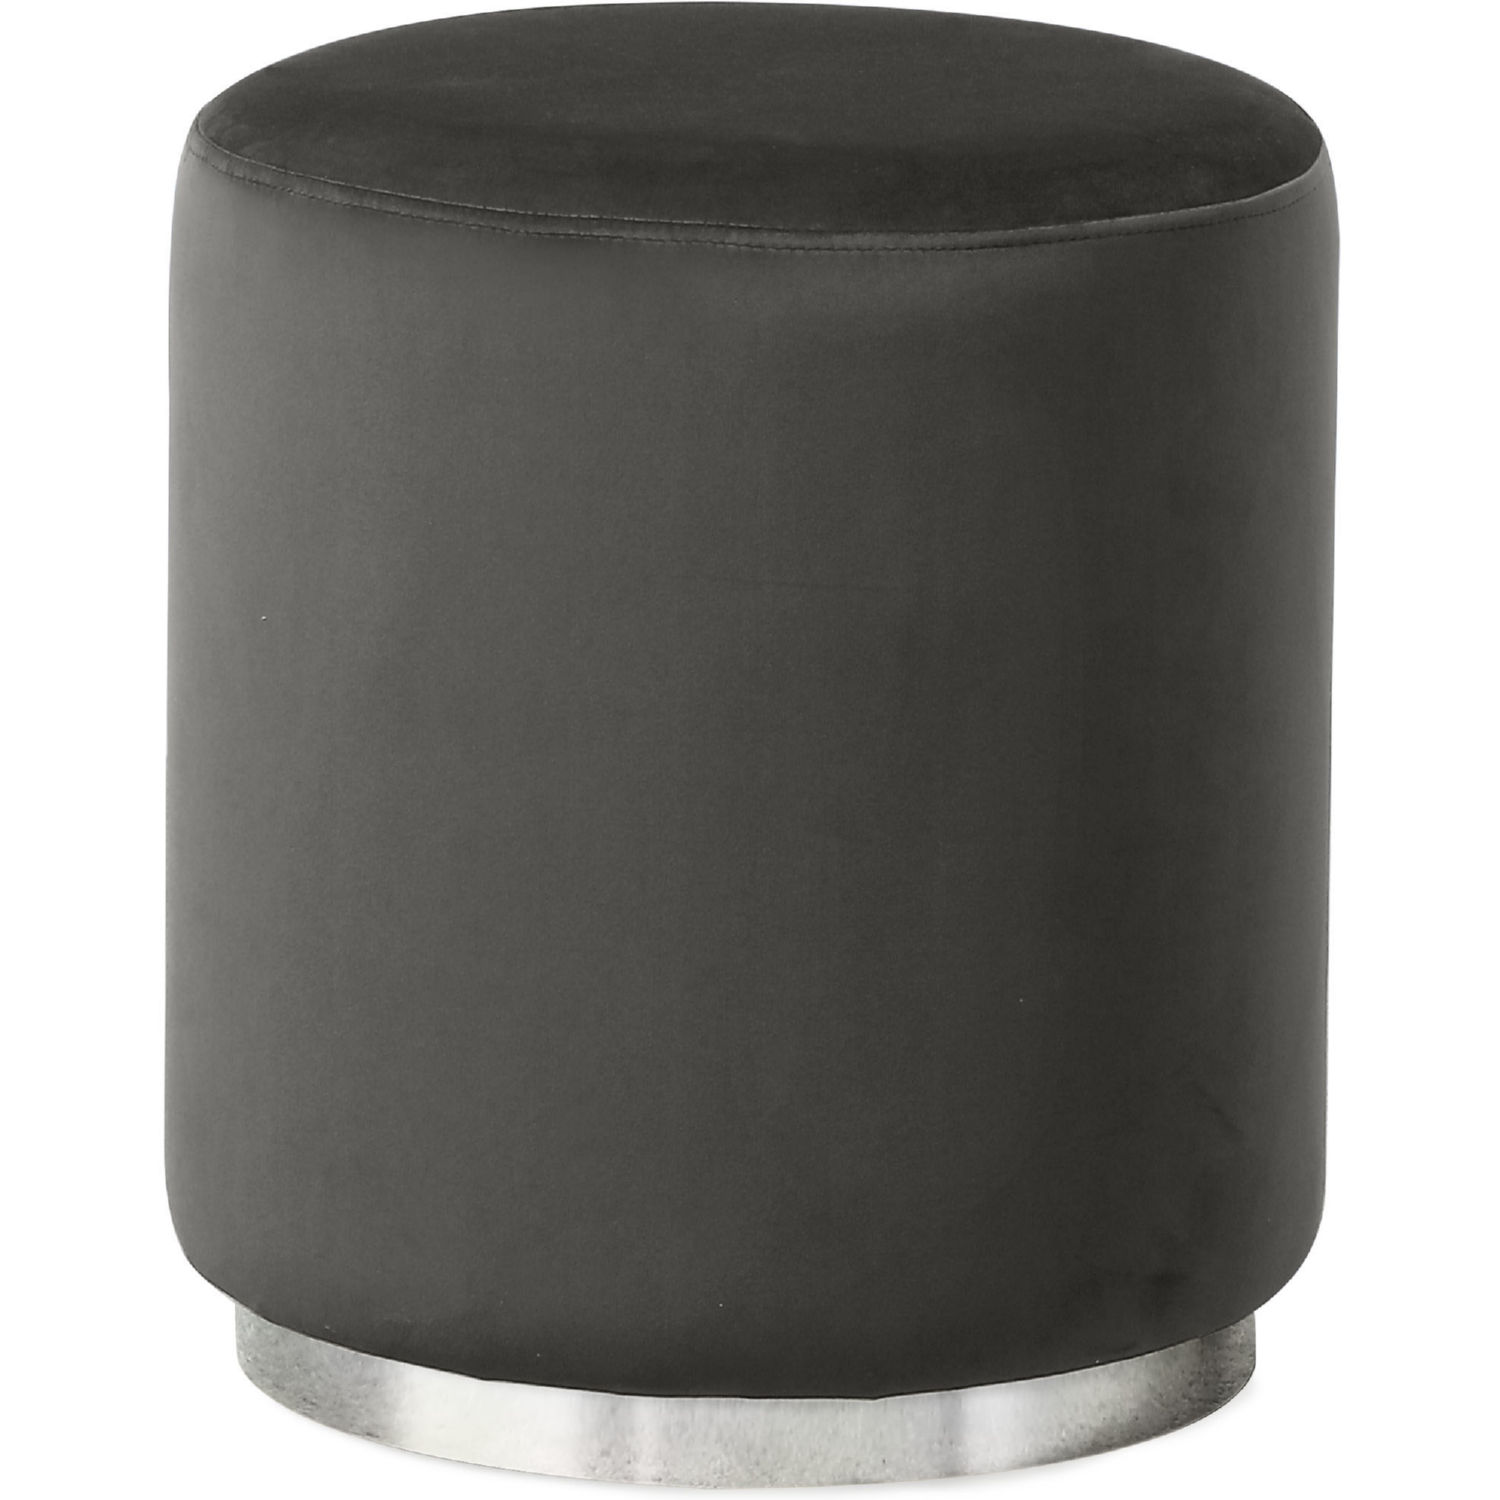 Brilliant Sorbet Round Ottoman In Grey Velvet W Silver Stainless Accent By Diamond Sofa Caraccident5 Cool Chair Designs And Ideas Caraccident5Info